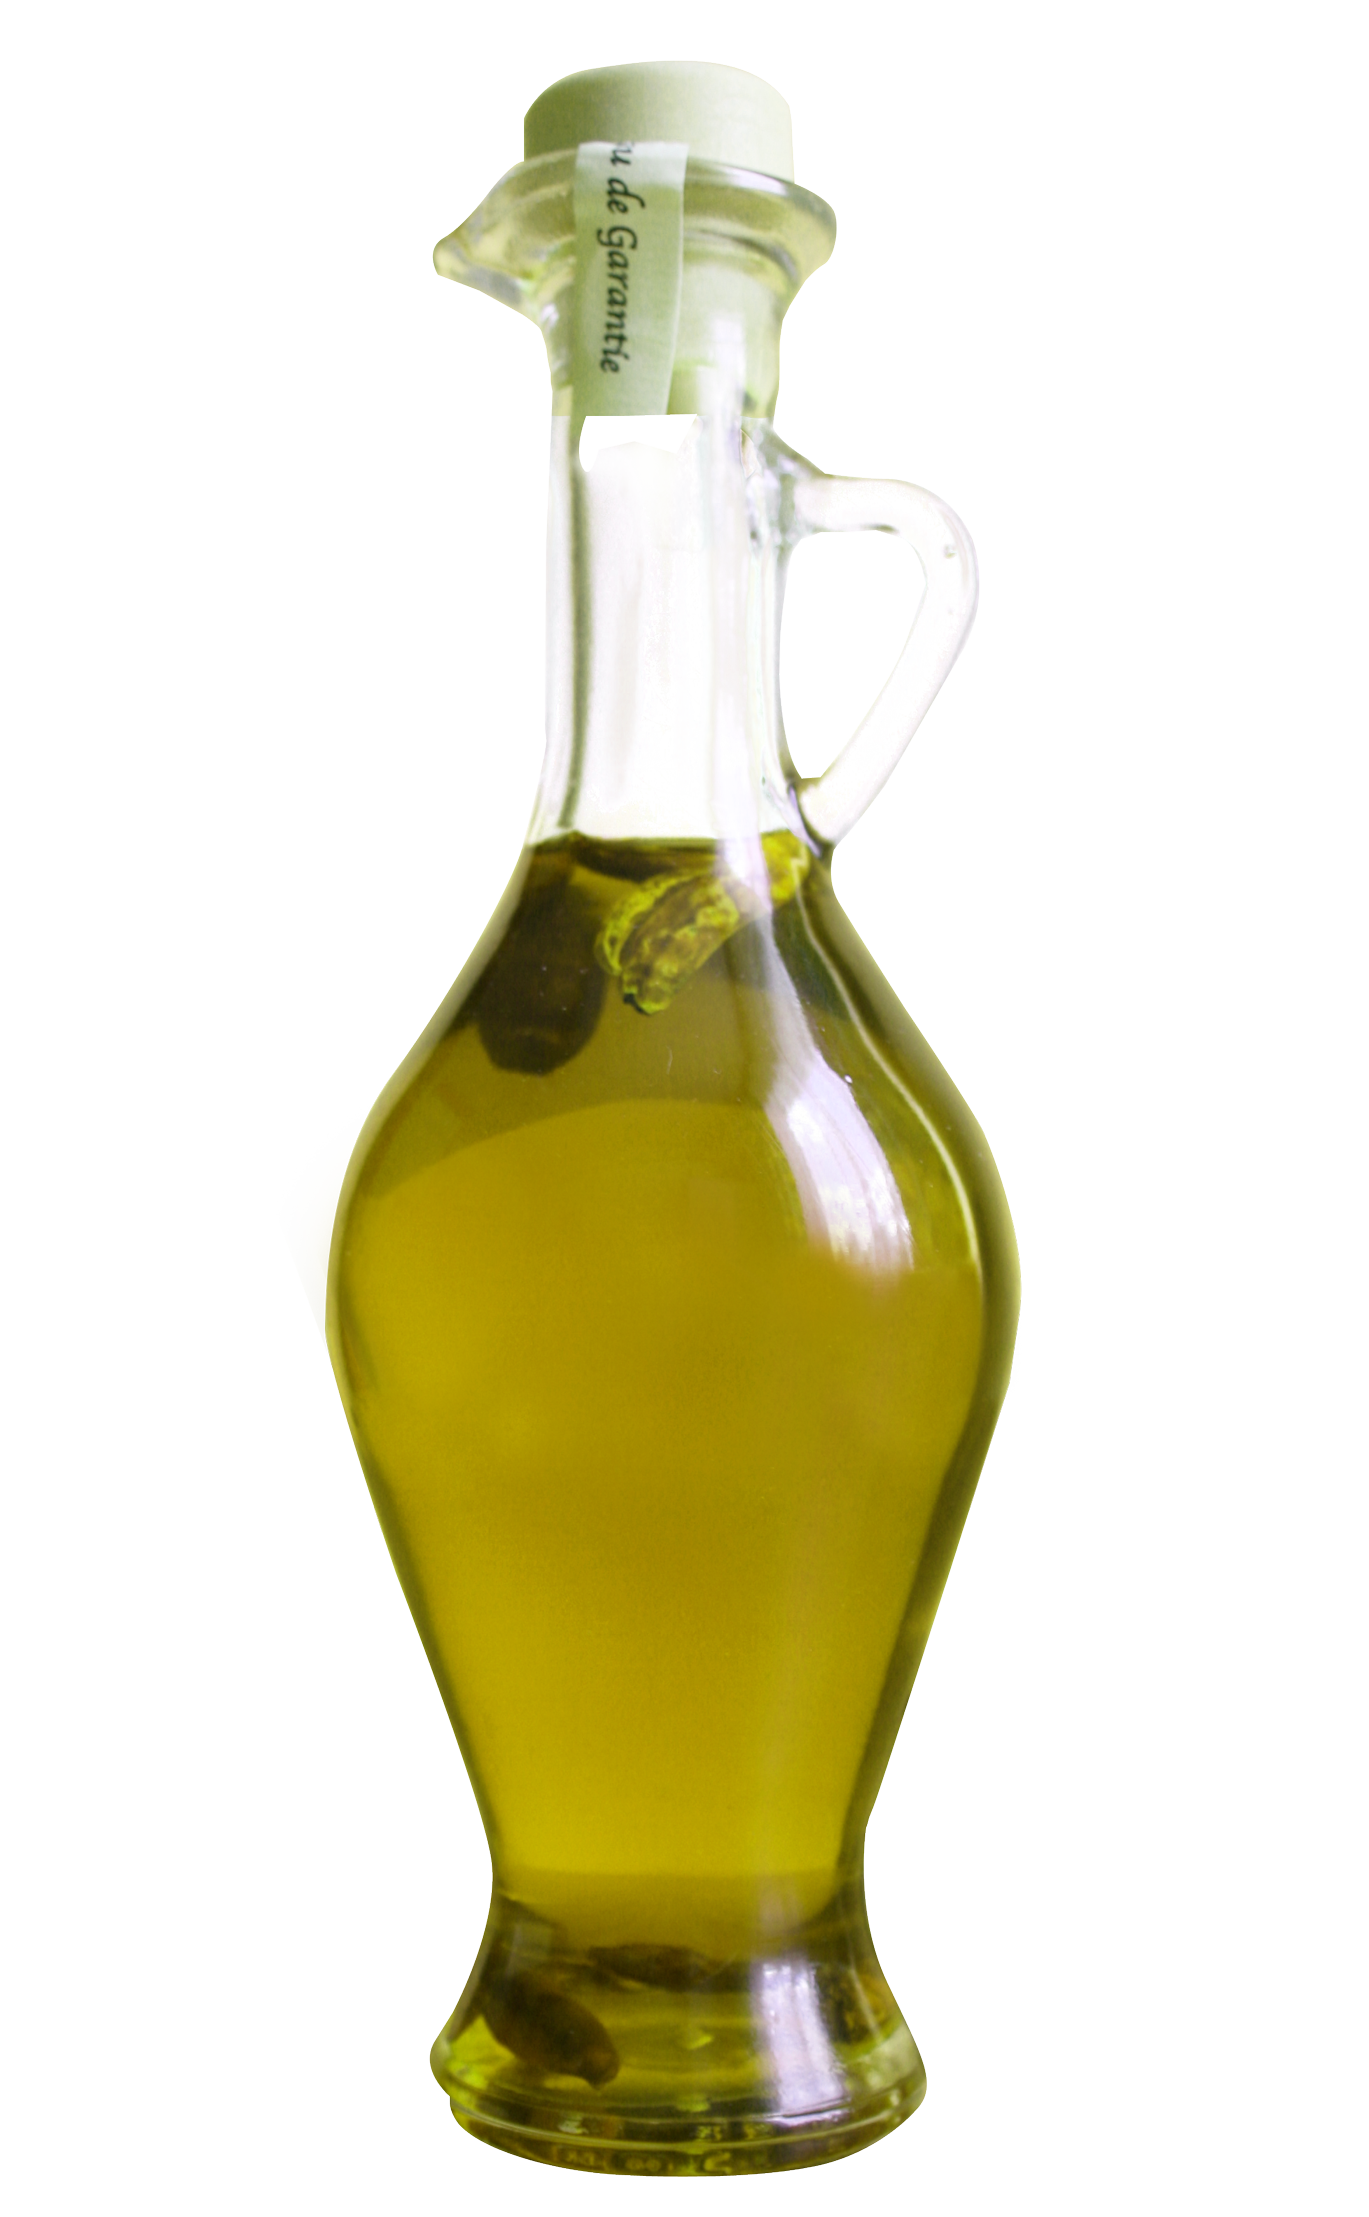 Png images all download. Oil clipart transparent